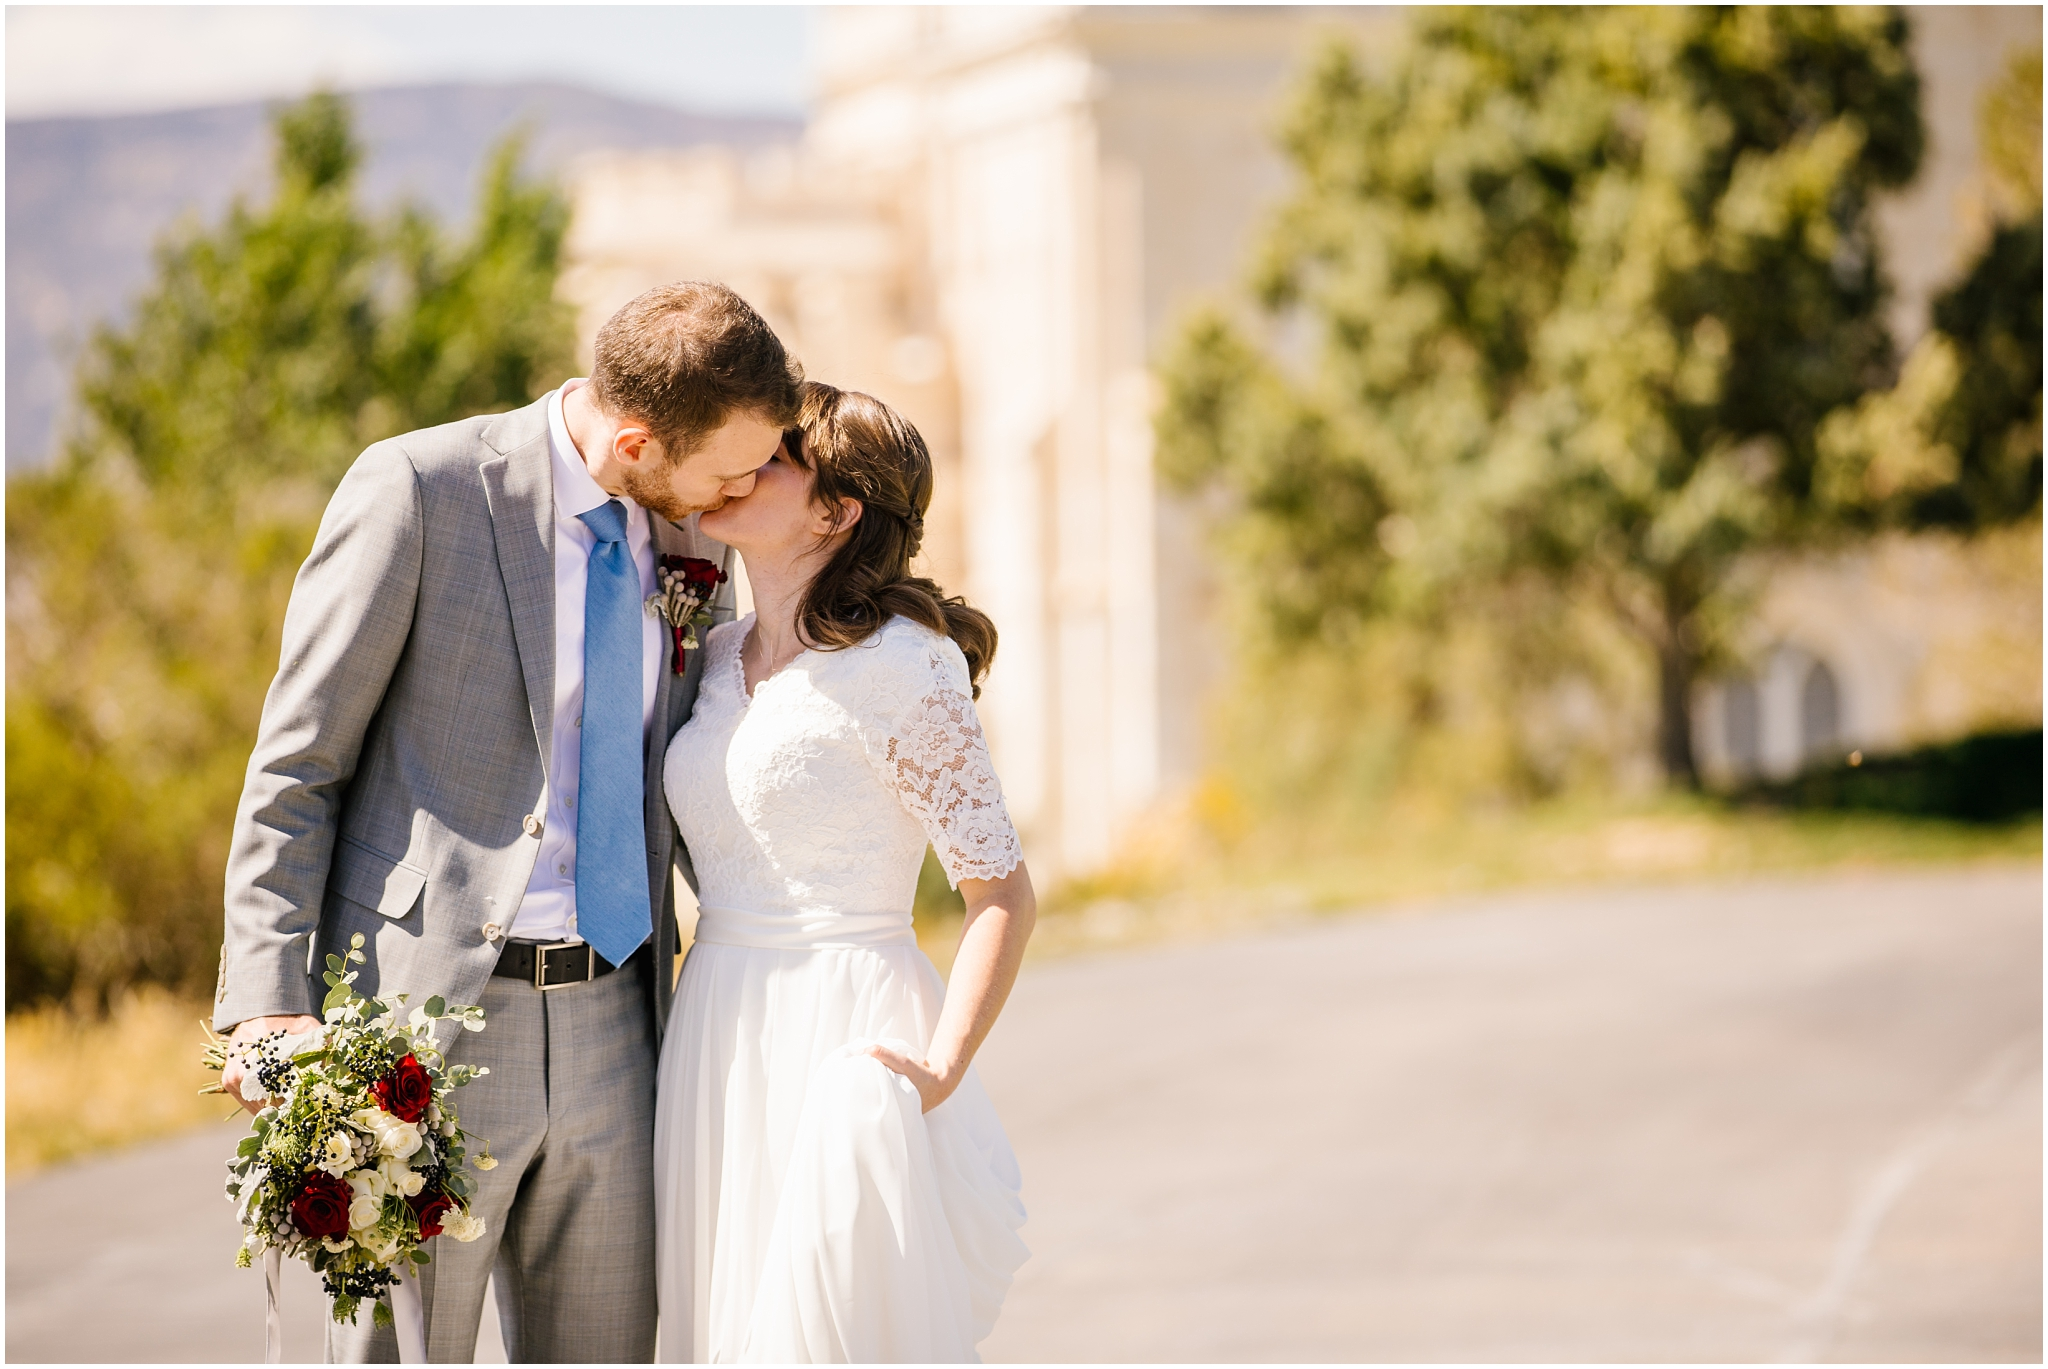 BrynneWinston-119_Lizzie-B-Imagery-Utah-Wedding-Photographer-Utah-County-Manti-Temple.jpg